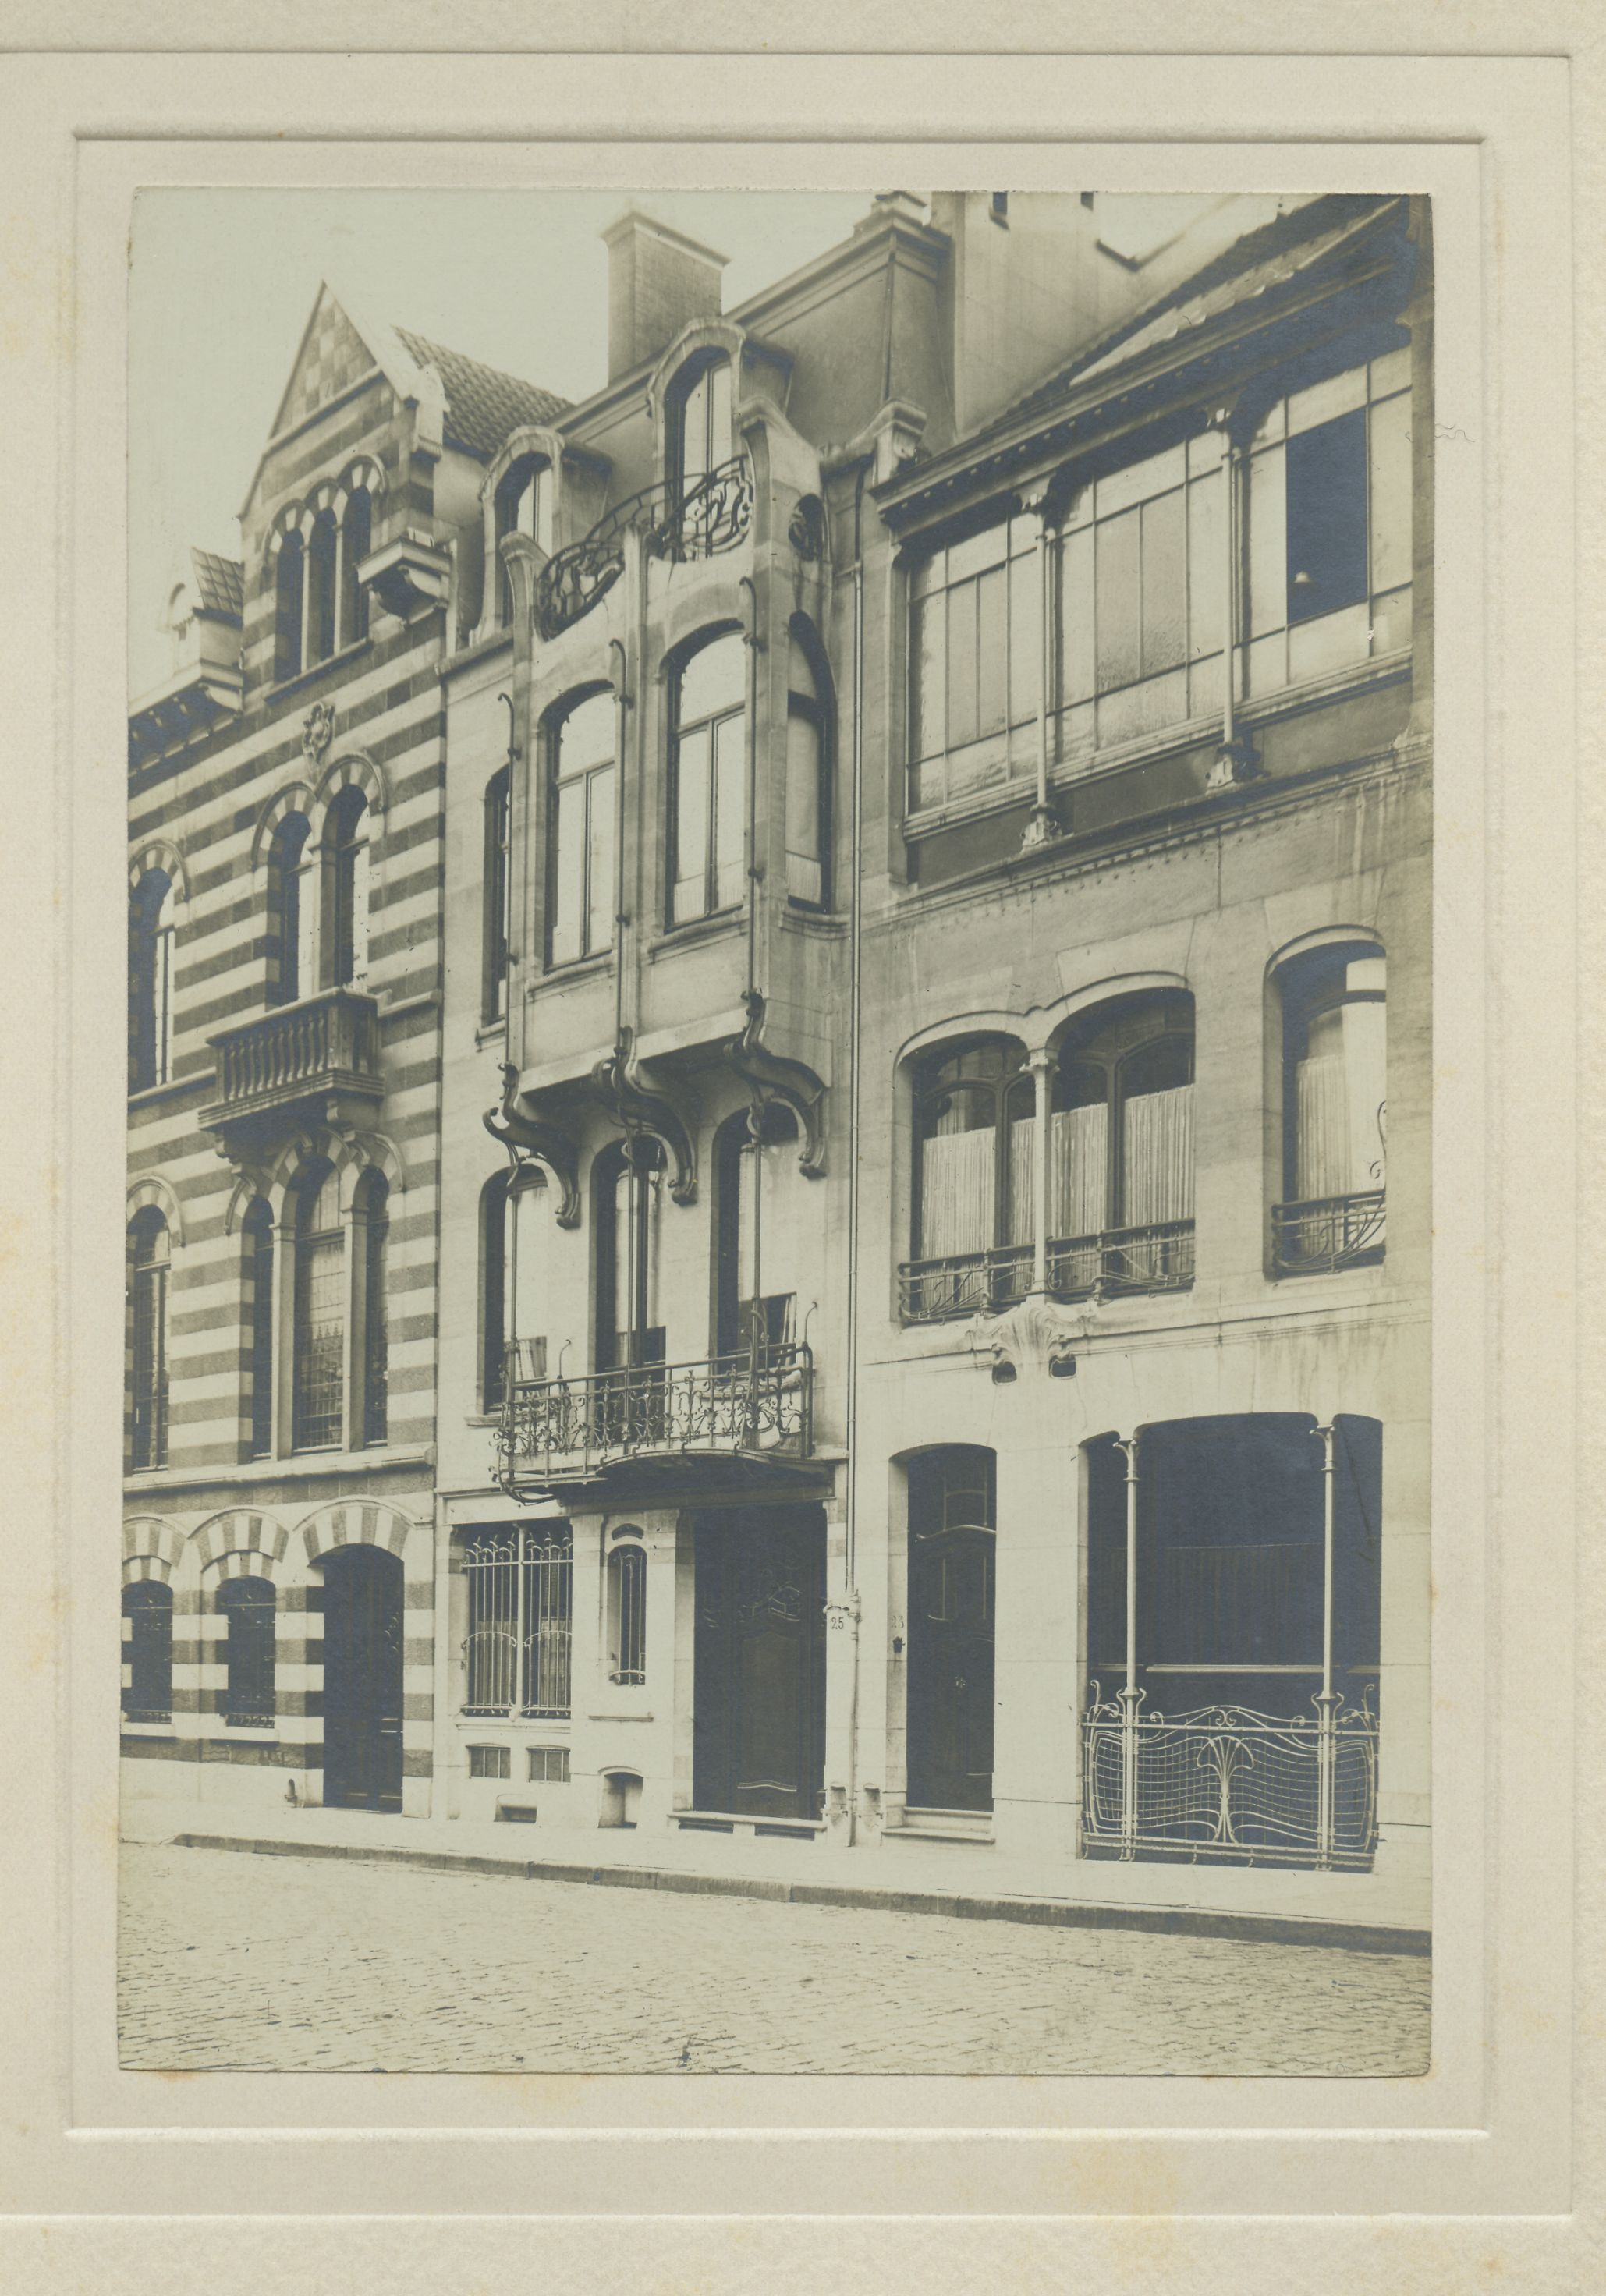 Photo De Maison Americaine file:maison horta (23-25, rue américaine, 1060, brussels